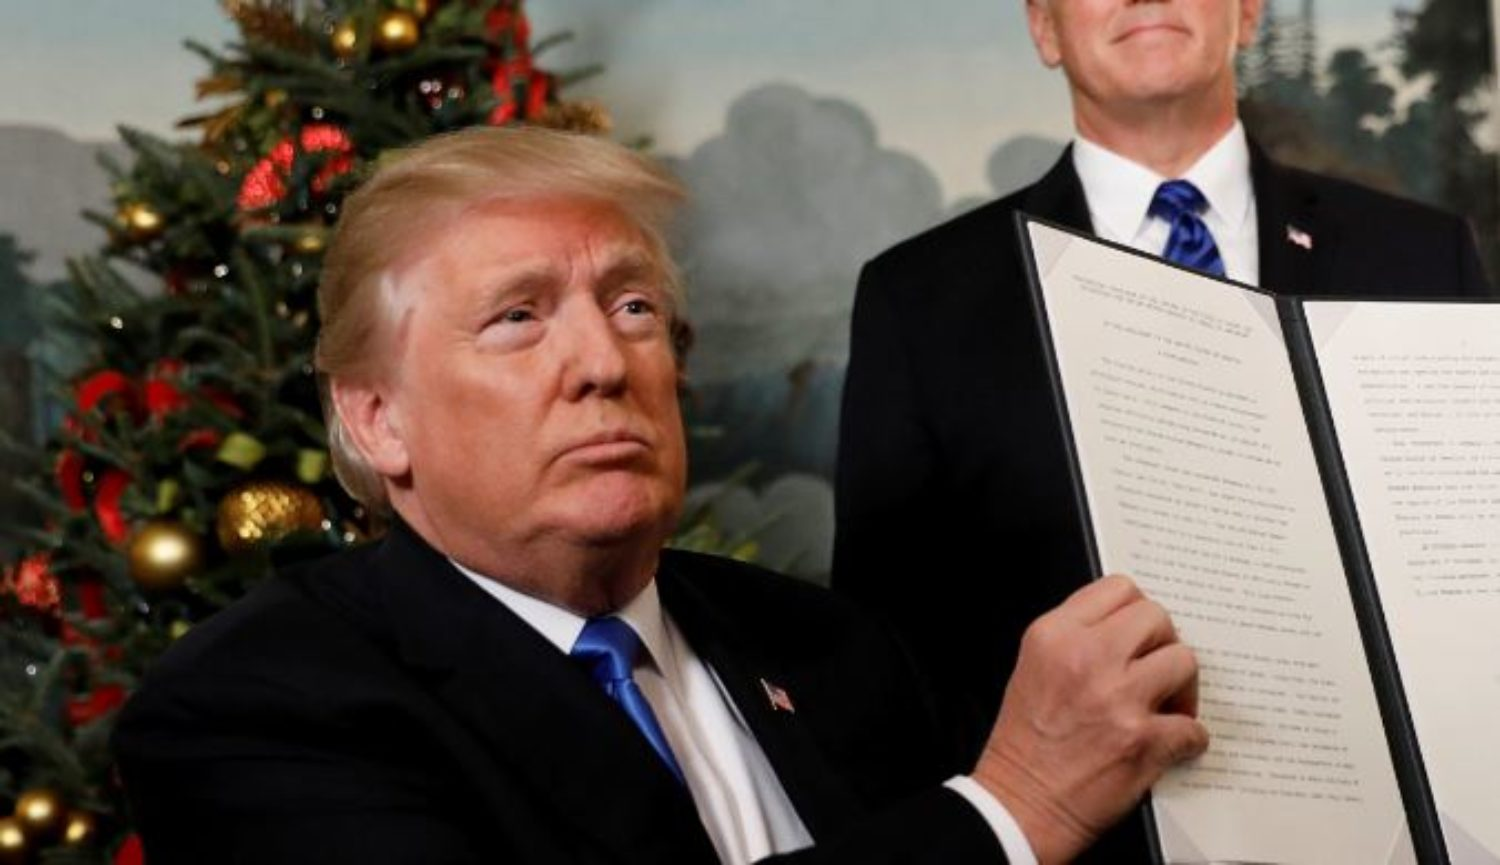 U.S. President Donald Trump holds up the signed proclamation that the United States recognizes Jerusalem as the capital of Israel and will move its embassy there, during an address from the White House in Washington, DC, U.S. December 6, 2017. REUTERS/Kevin Lamarque/